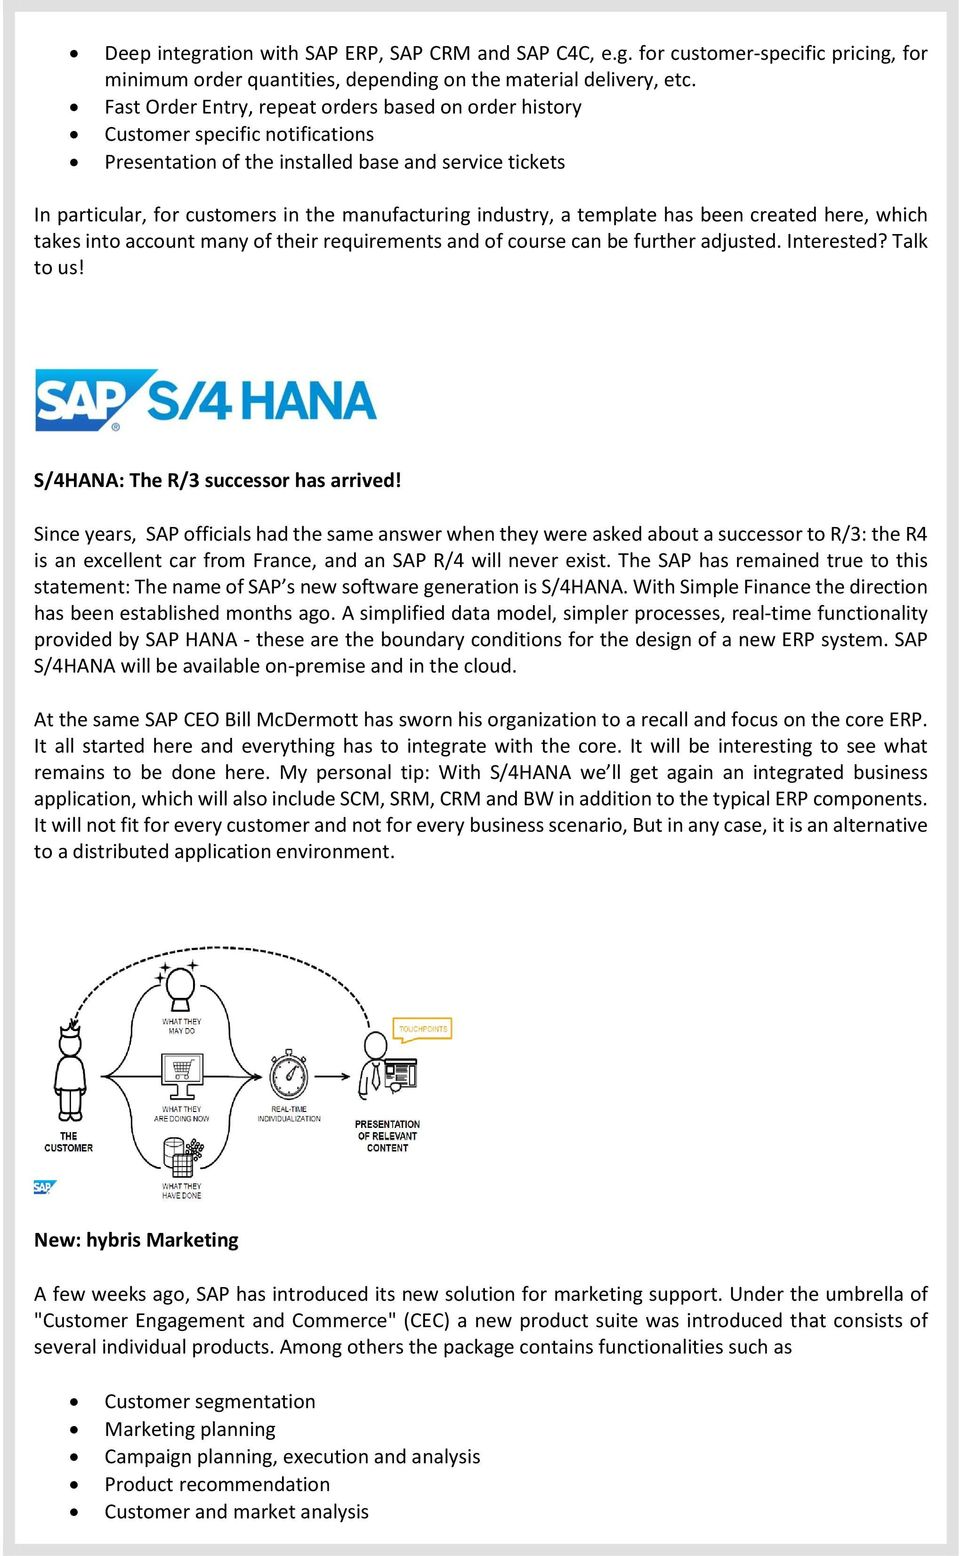 industry, a template has been created here, which takes into account many of their requirements and of course can be further adjusted. Interested? Talk to us! S/4HANA: The R/3 successor has arrived!